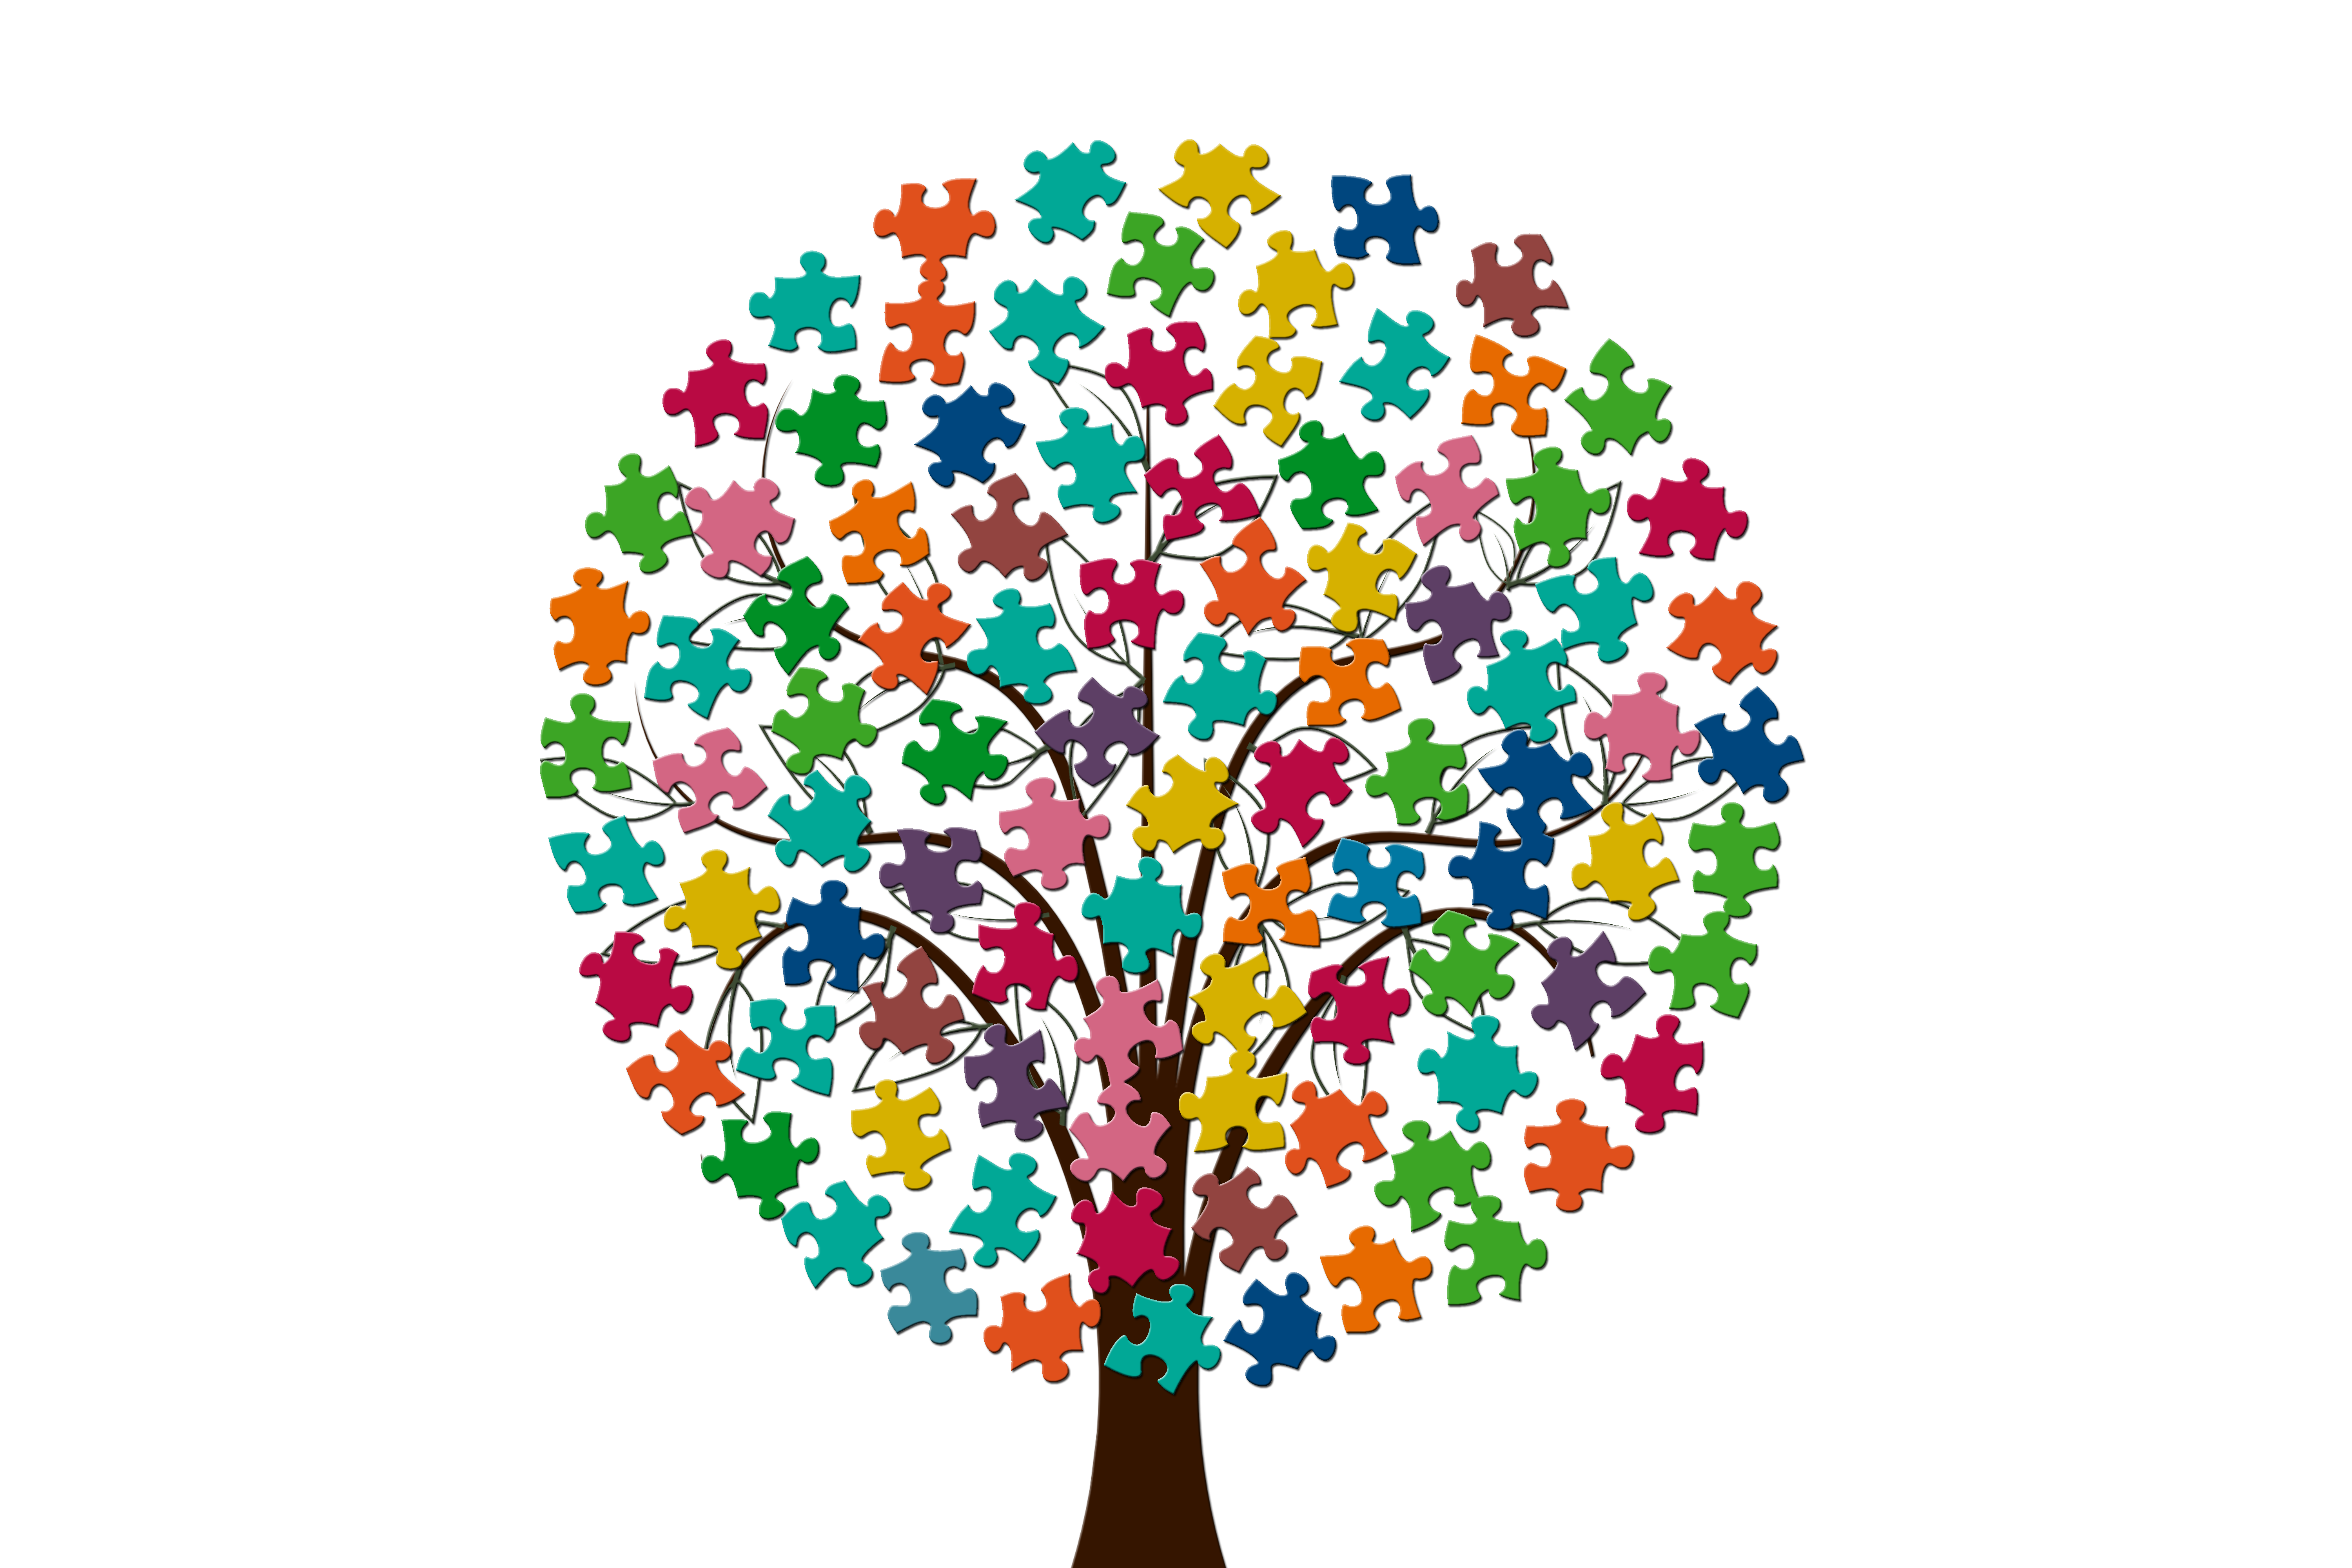 tree, share, pieces of the puzzle